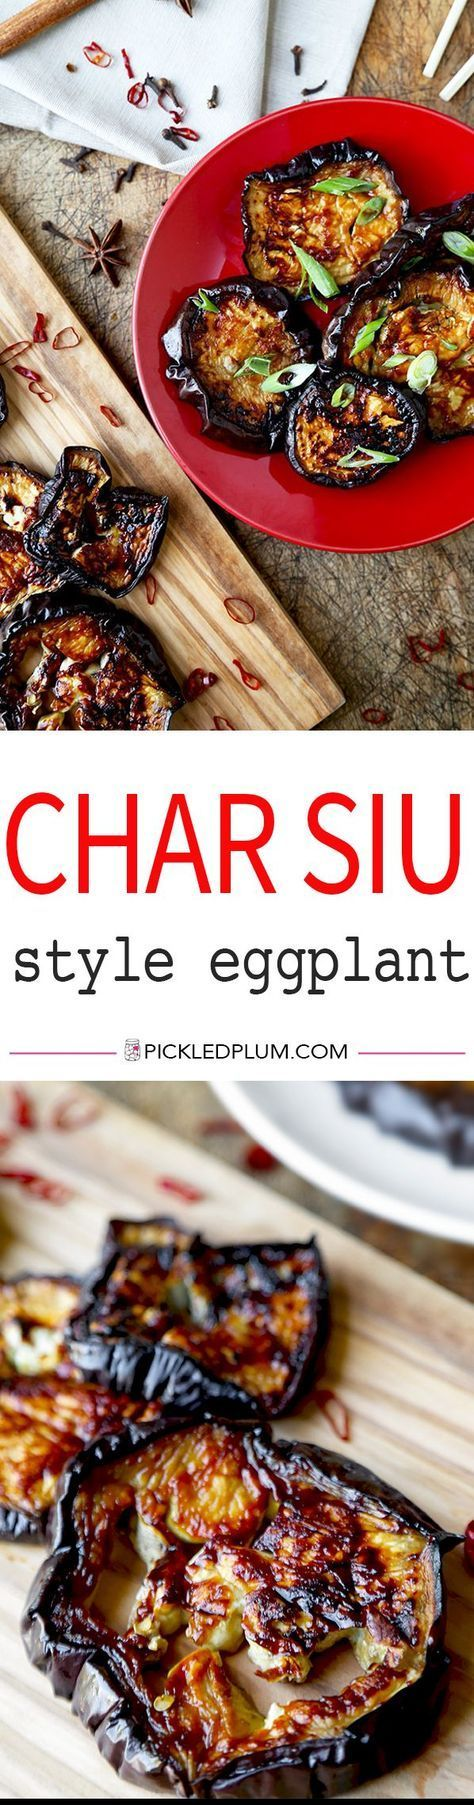 """Char Siu Style Roasted Eggplant - This roasted and caramelized Char Siu Style Eggplant Recipe has the deep sweet and savory flavors of Chinese roasted pork, but just happens to be super healthy! Recipe, vegetarian, side, appetizer, Chinese, healthy 